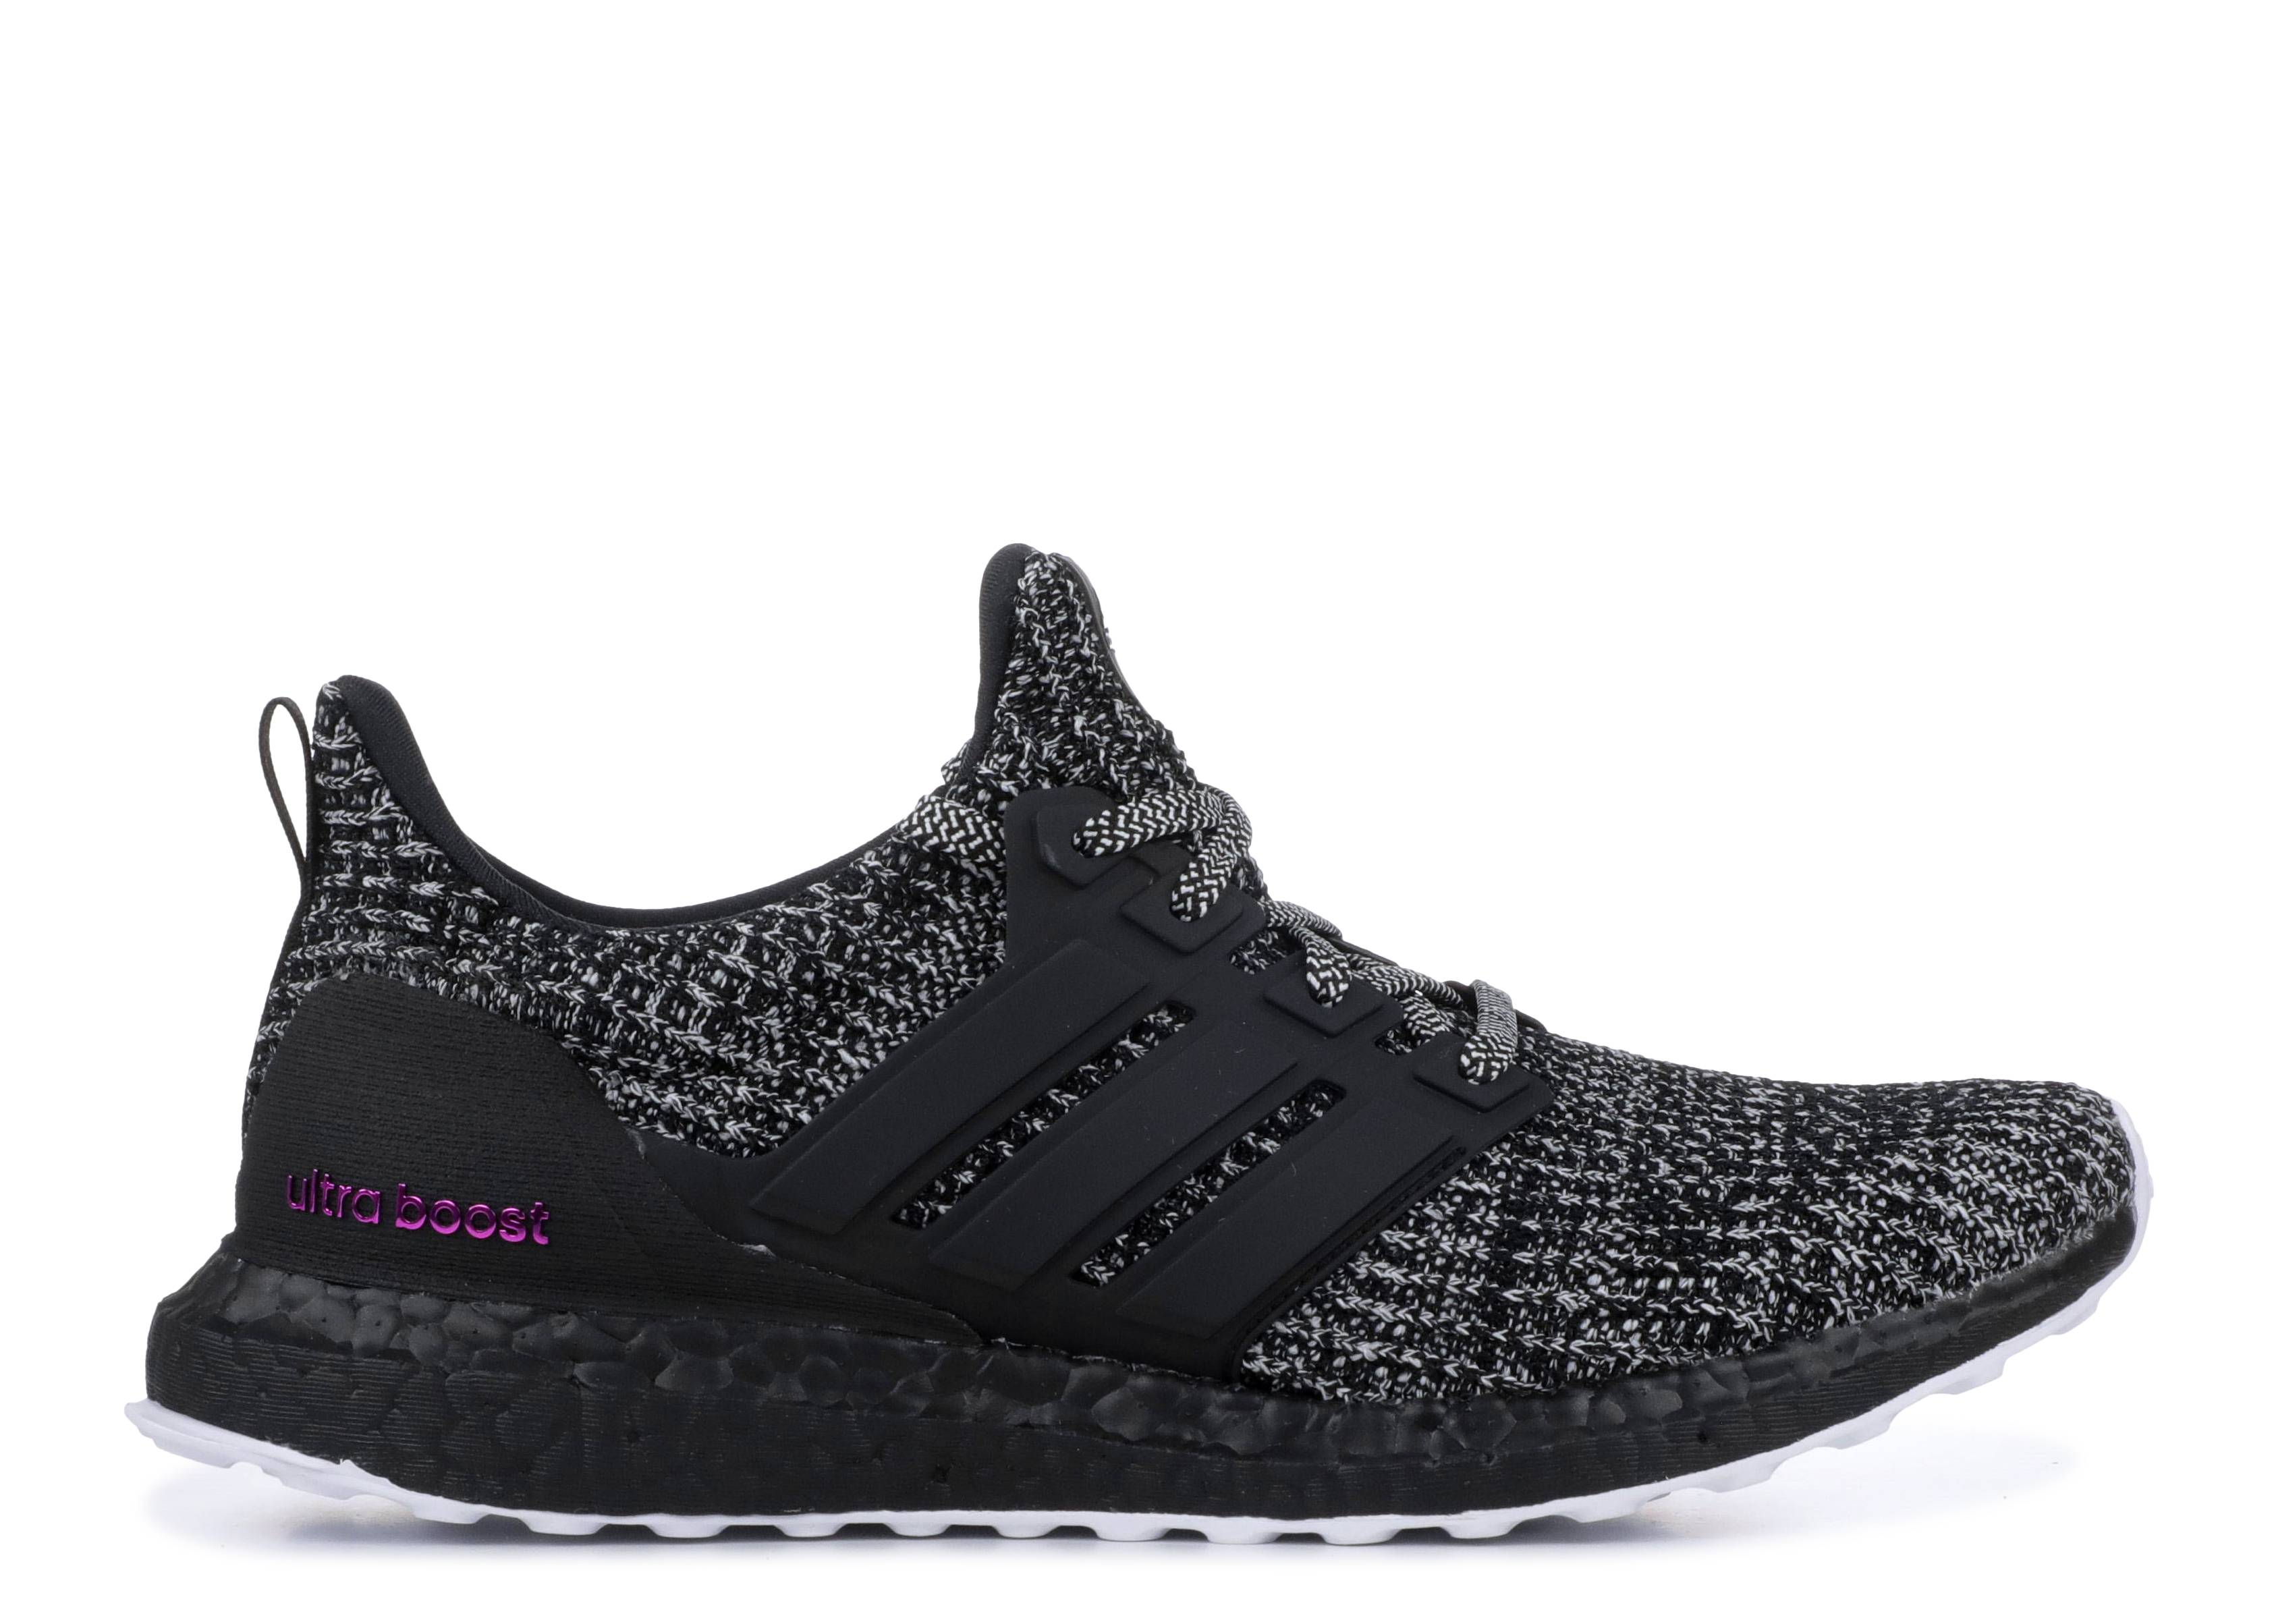 adidas Ultra Boost 4.0 Breast Cancer Awareness